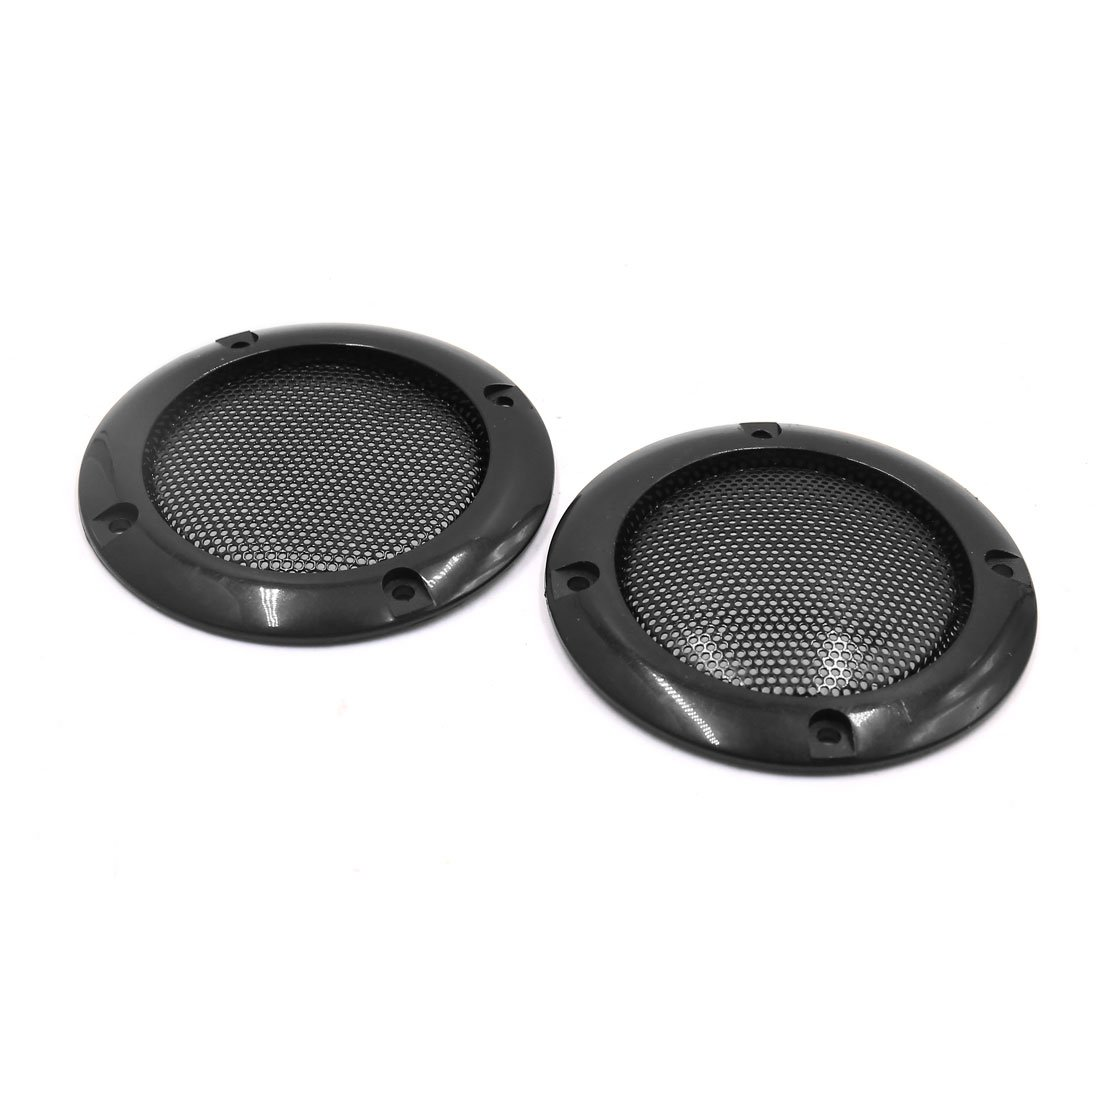 sourcingmap 2pcs 2inch Mesh Car Stereo Speaker Subwoofer Cover Protect Grill